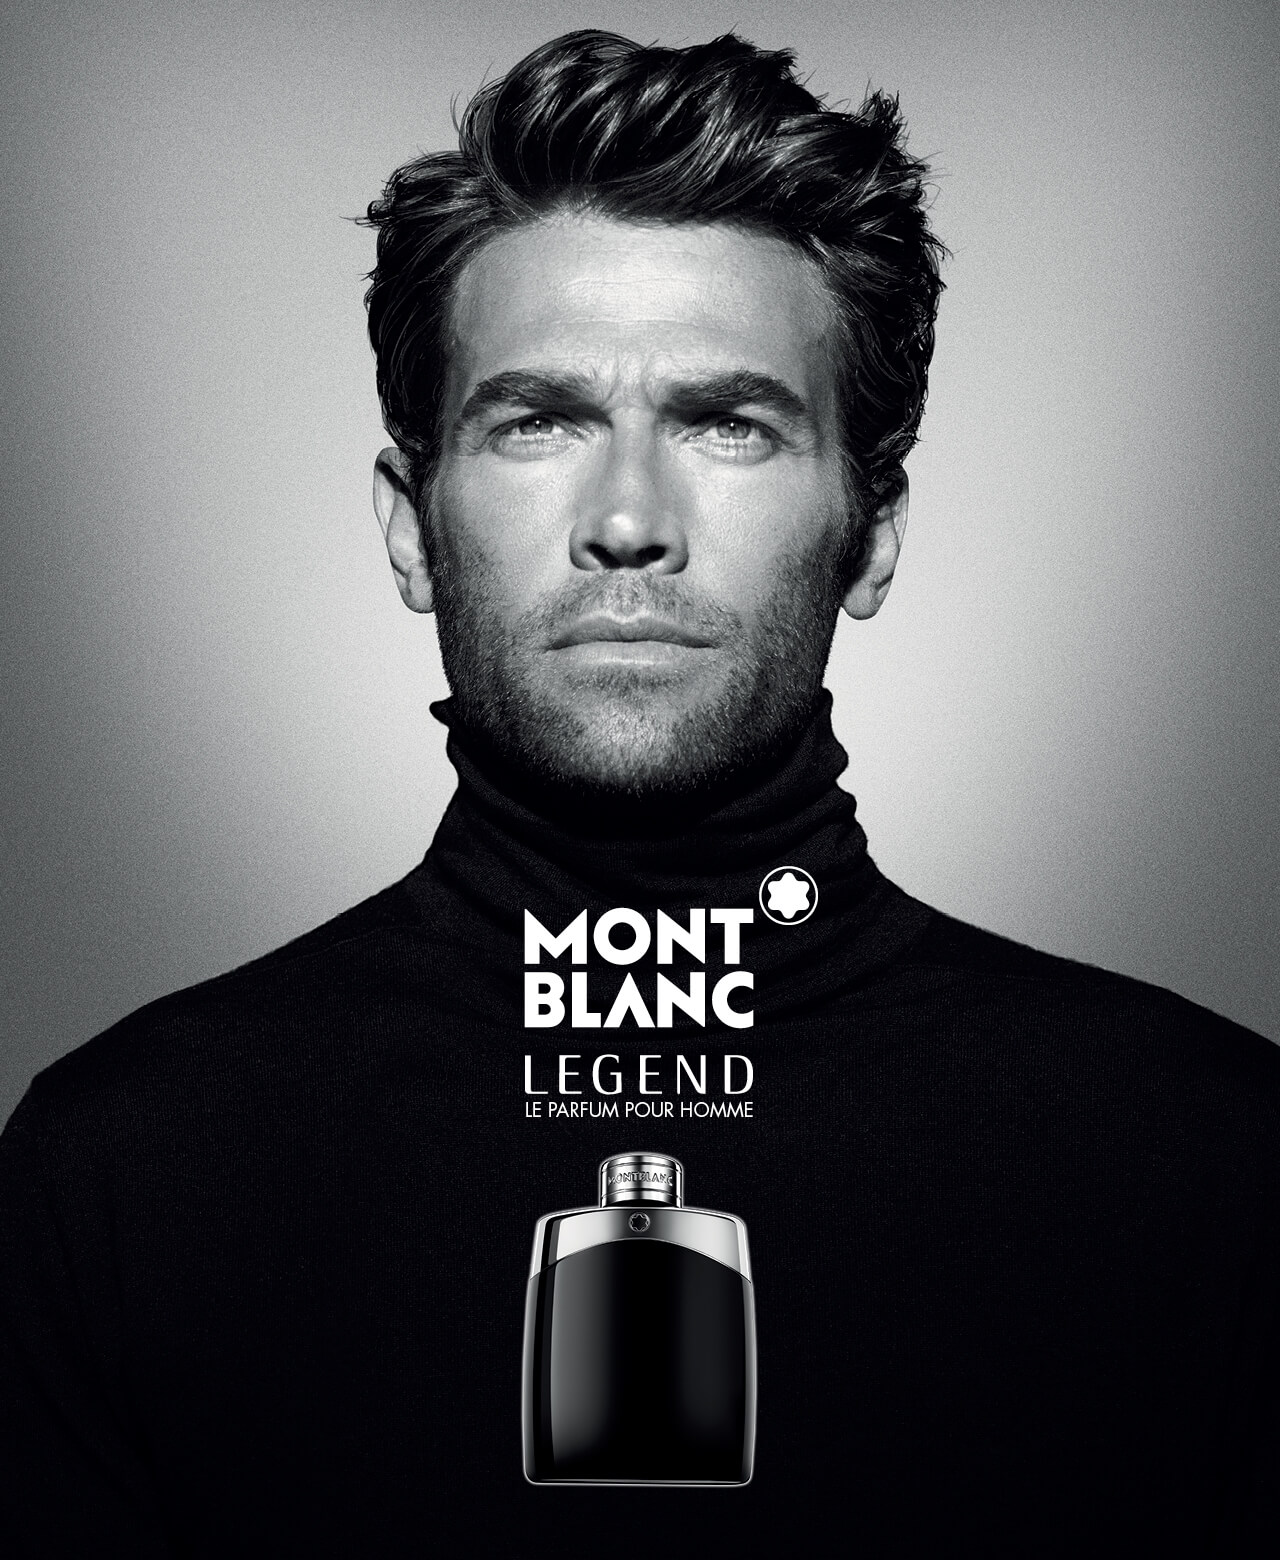 mont blanc legend the fragrance for men